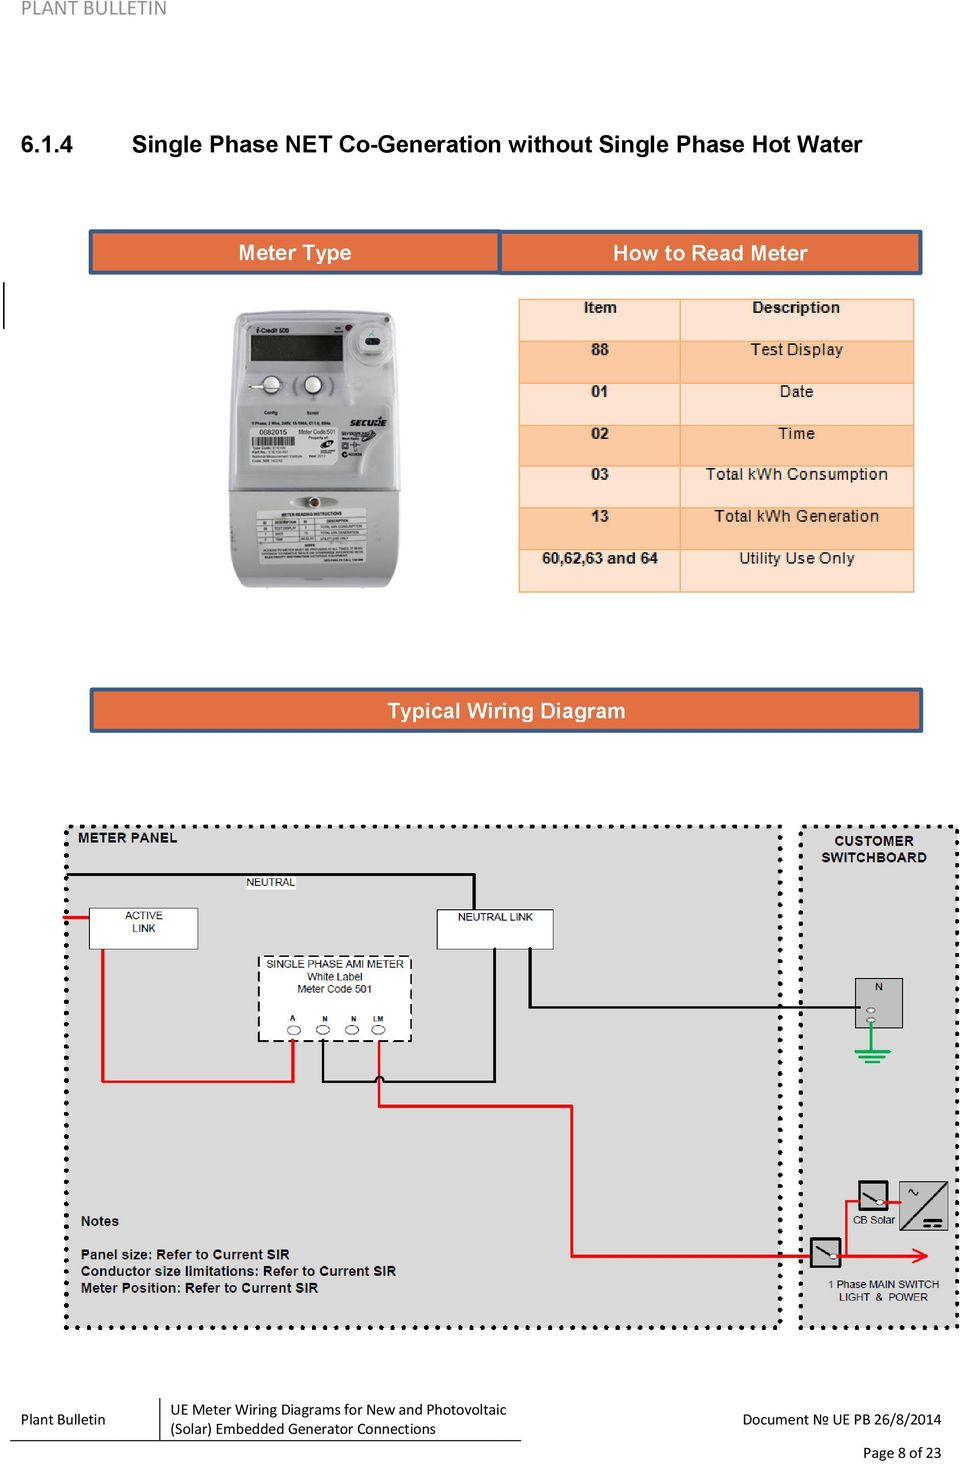 ue plant bulletin ue meter wiring diagrams for new and photovoltaic solar embedded generator